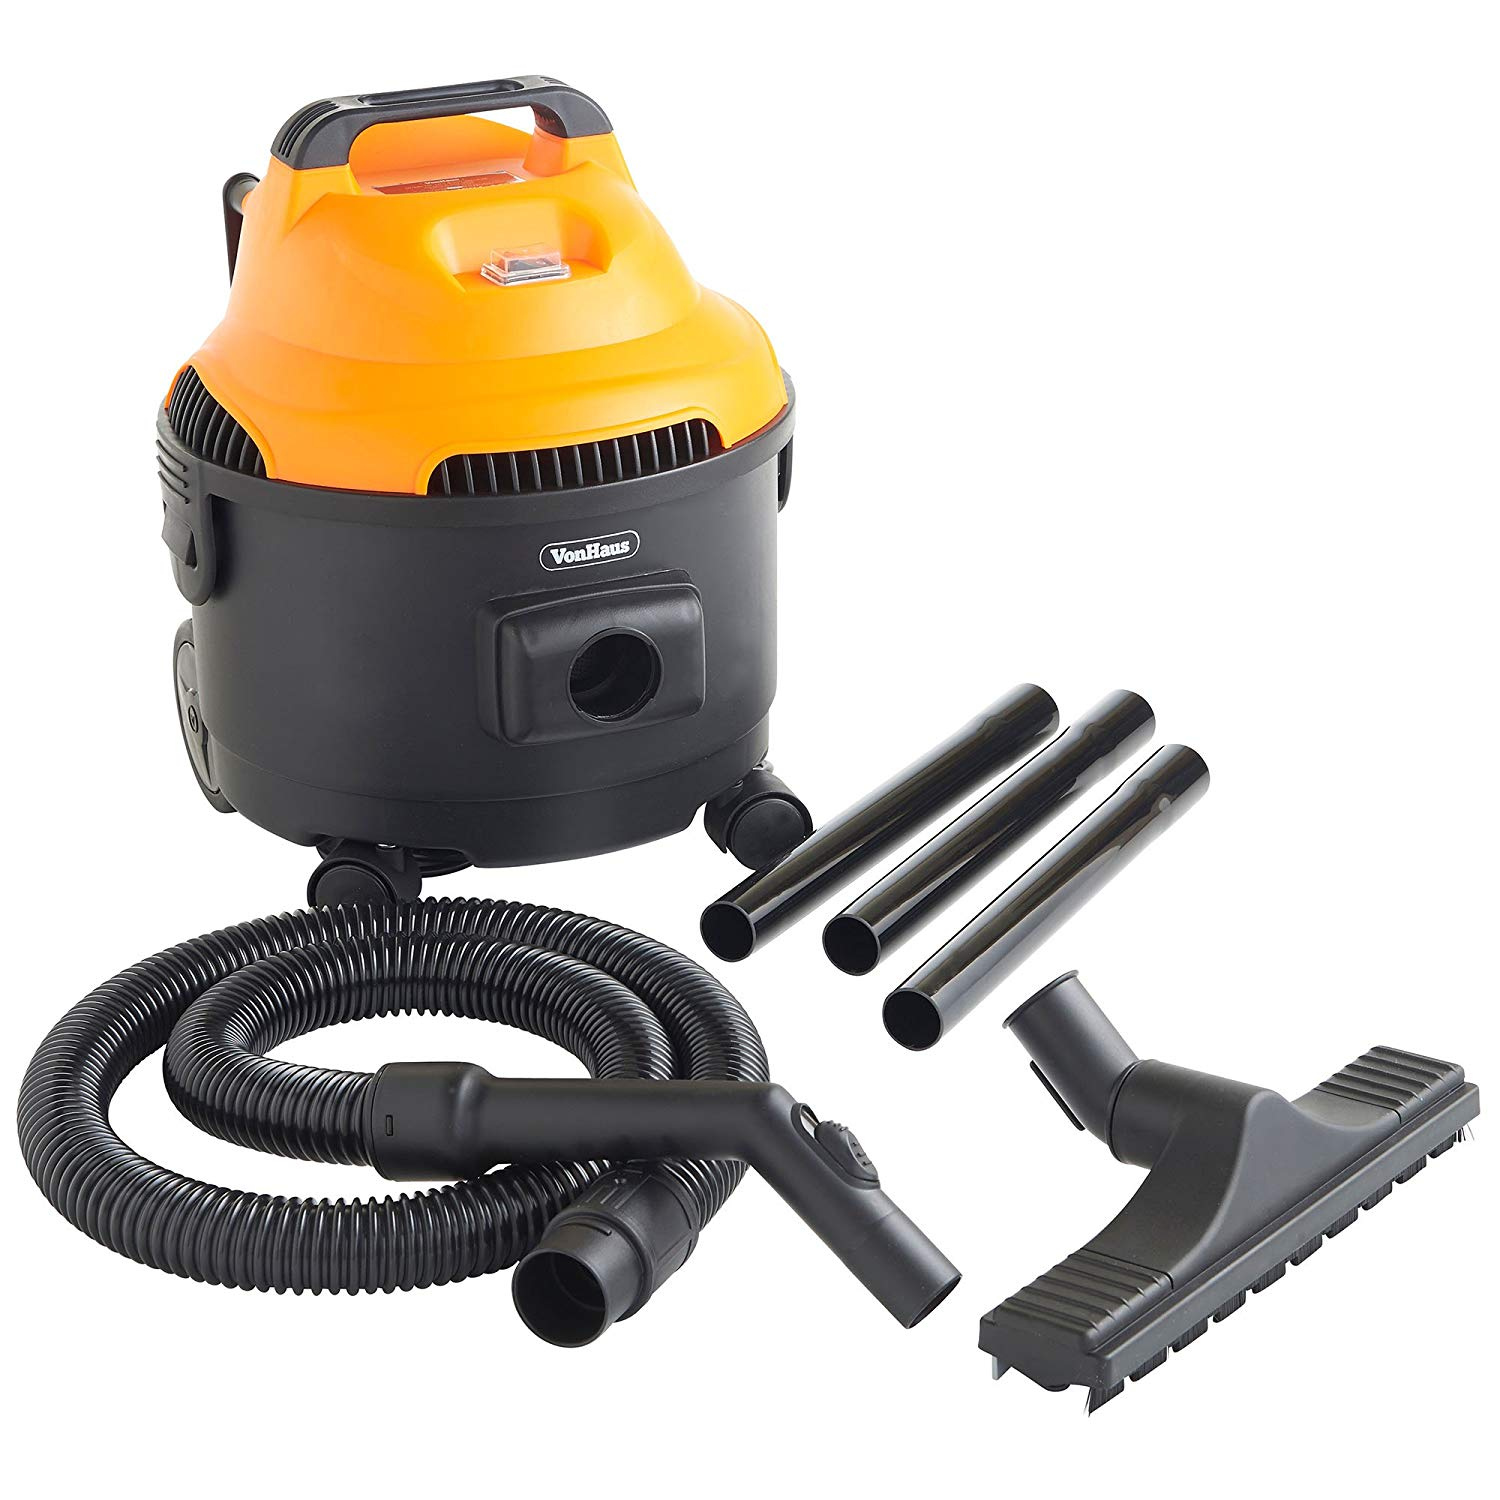 VonHaus 3 in 1 Wet and Dry Bagless Vacuum Cleaner attachments